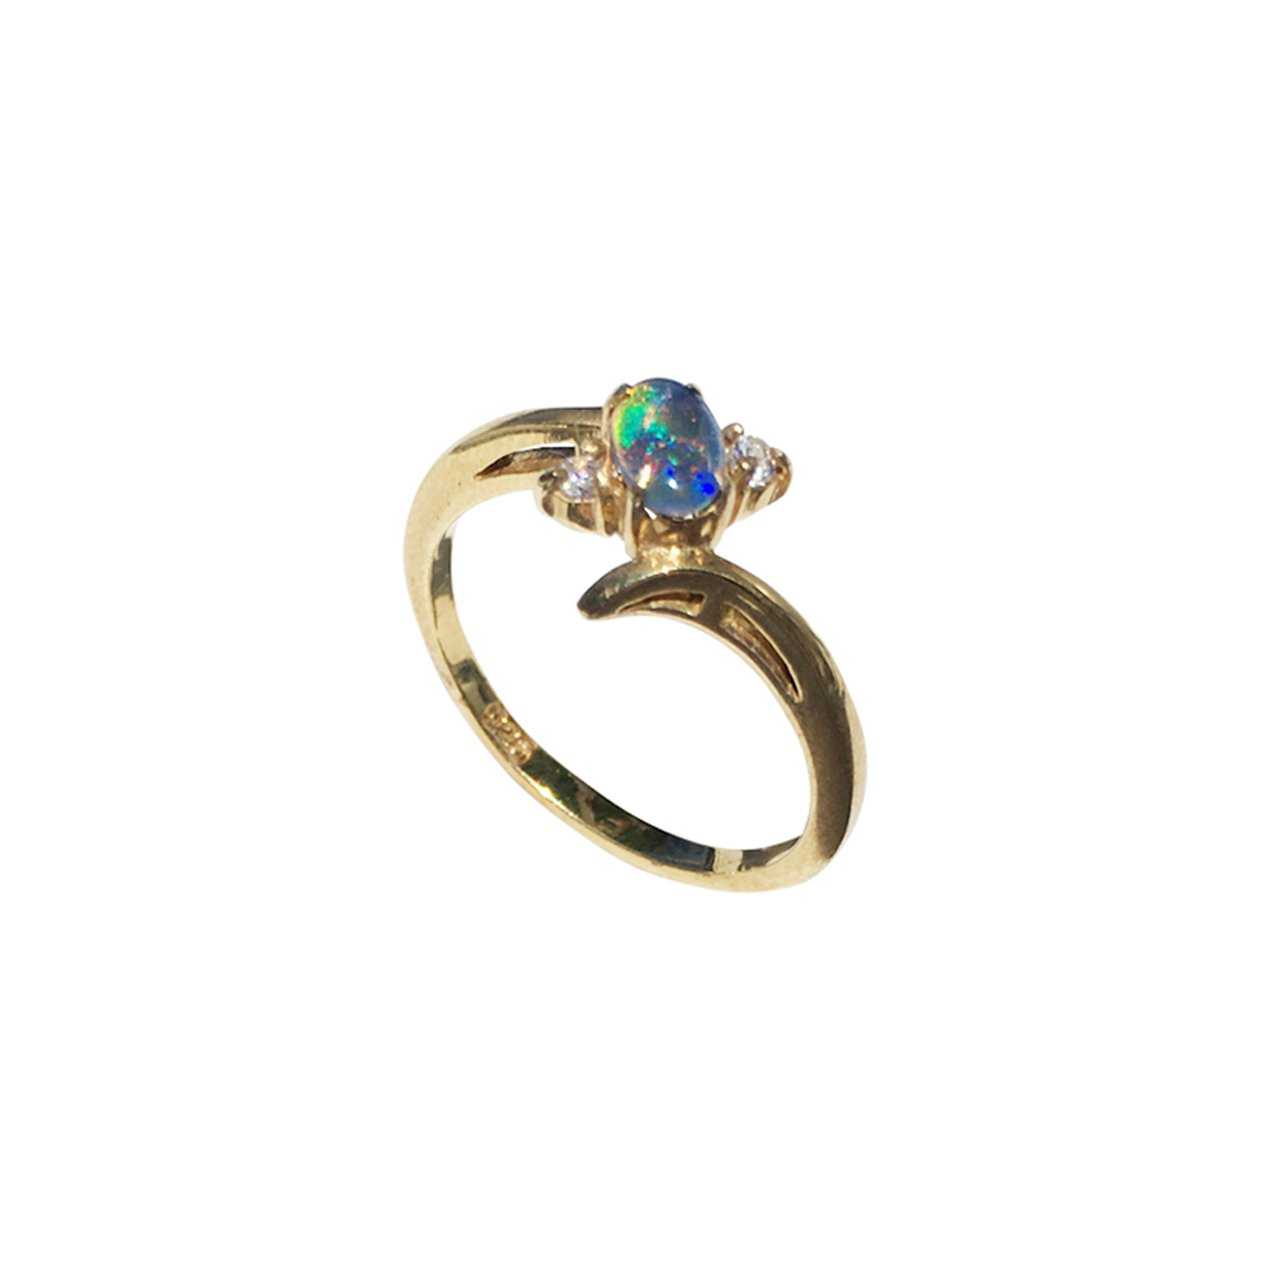 EASY TO LOVE TOO 18KT GOLD PLATED OPAL RING